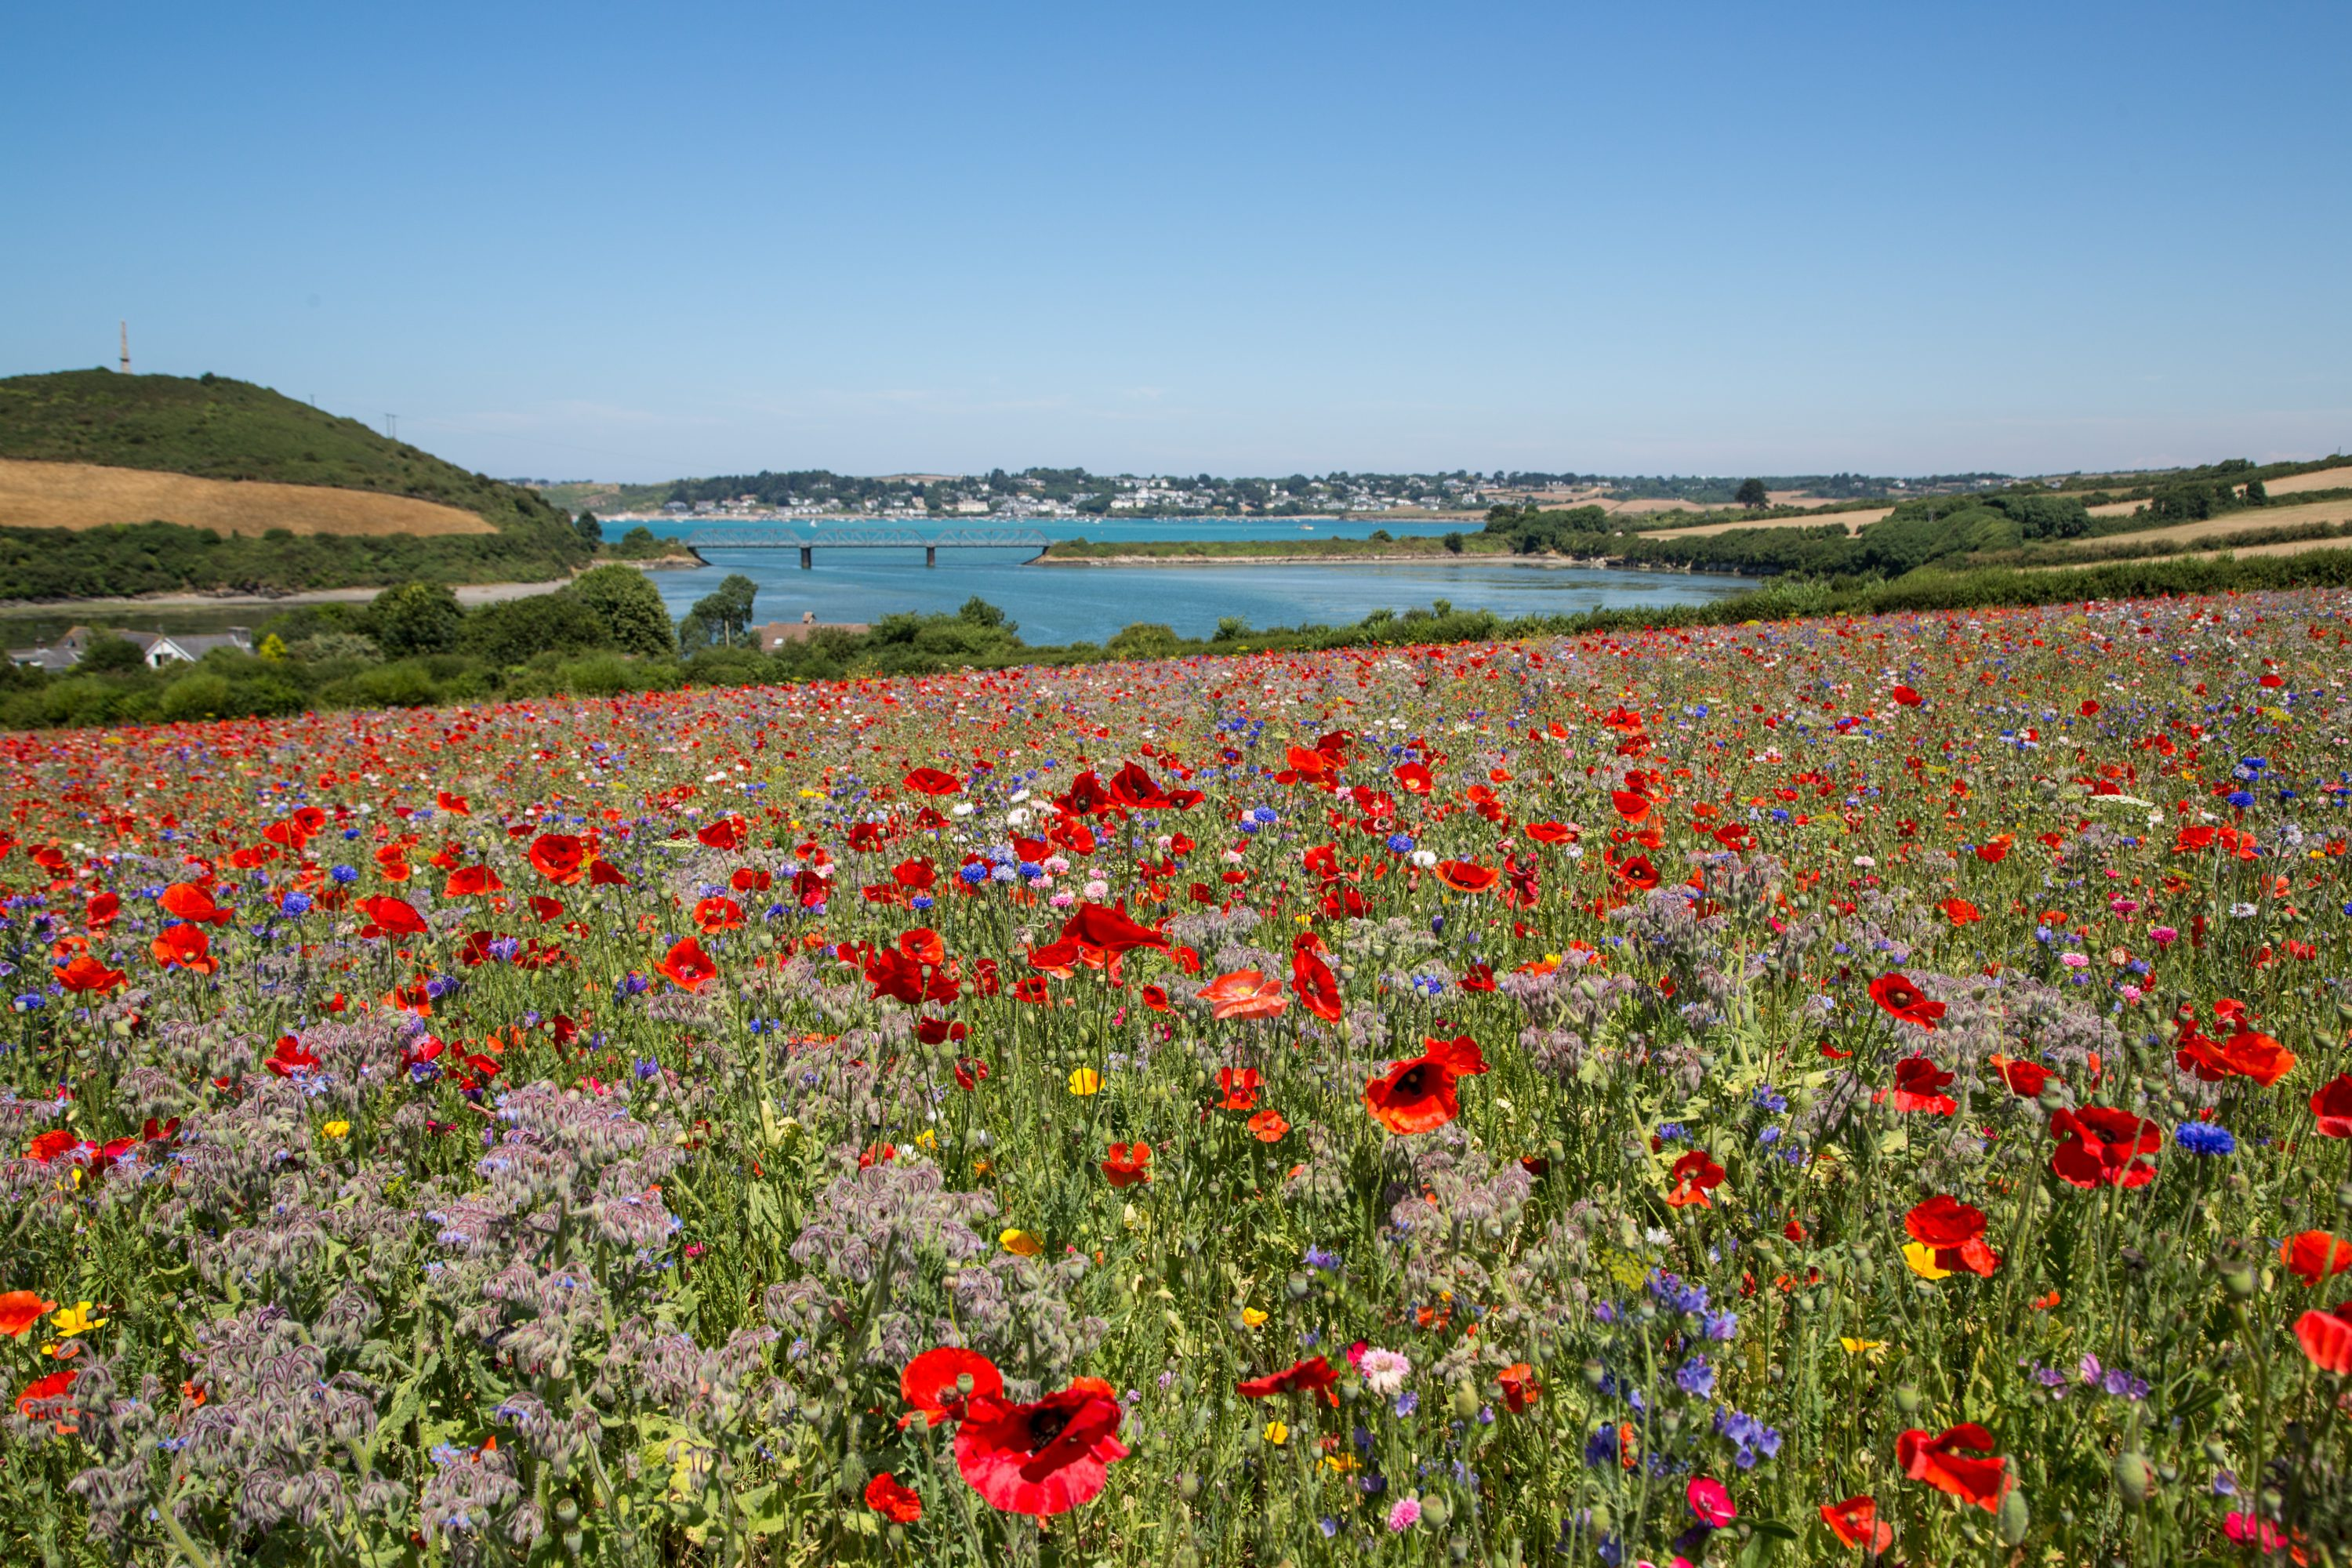 A field of poppies overlooking the iron bridge